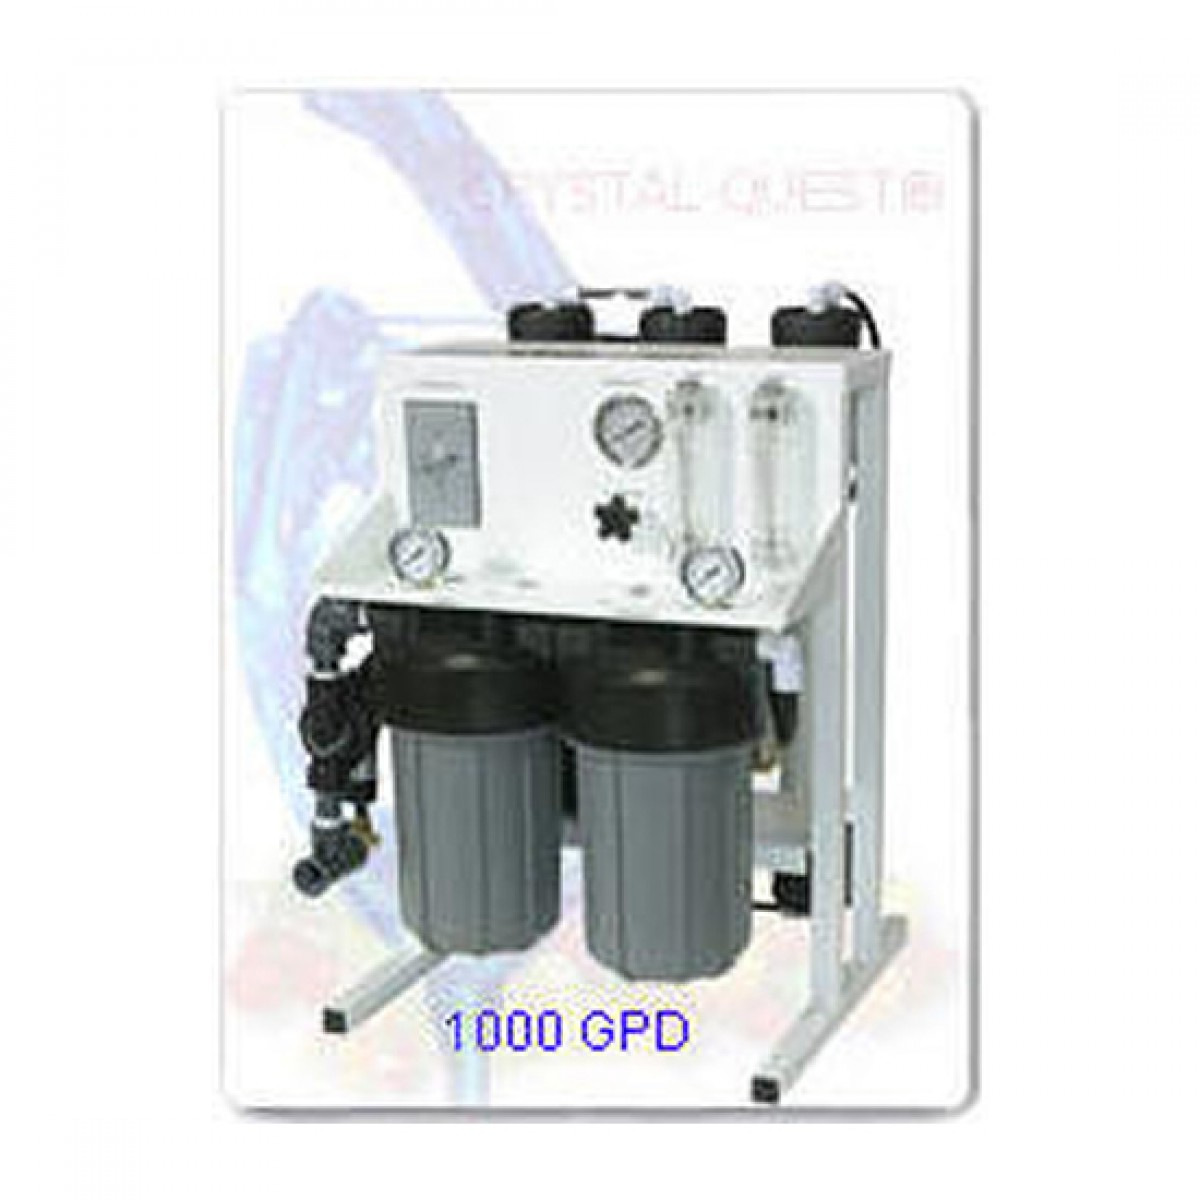 Crystal Quest Commercial Reverse Osmosis 1 000 Gpd Water